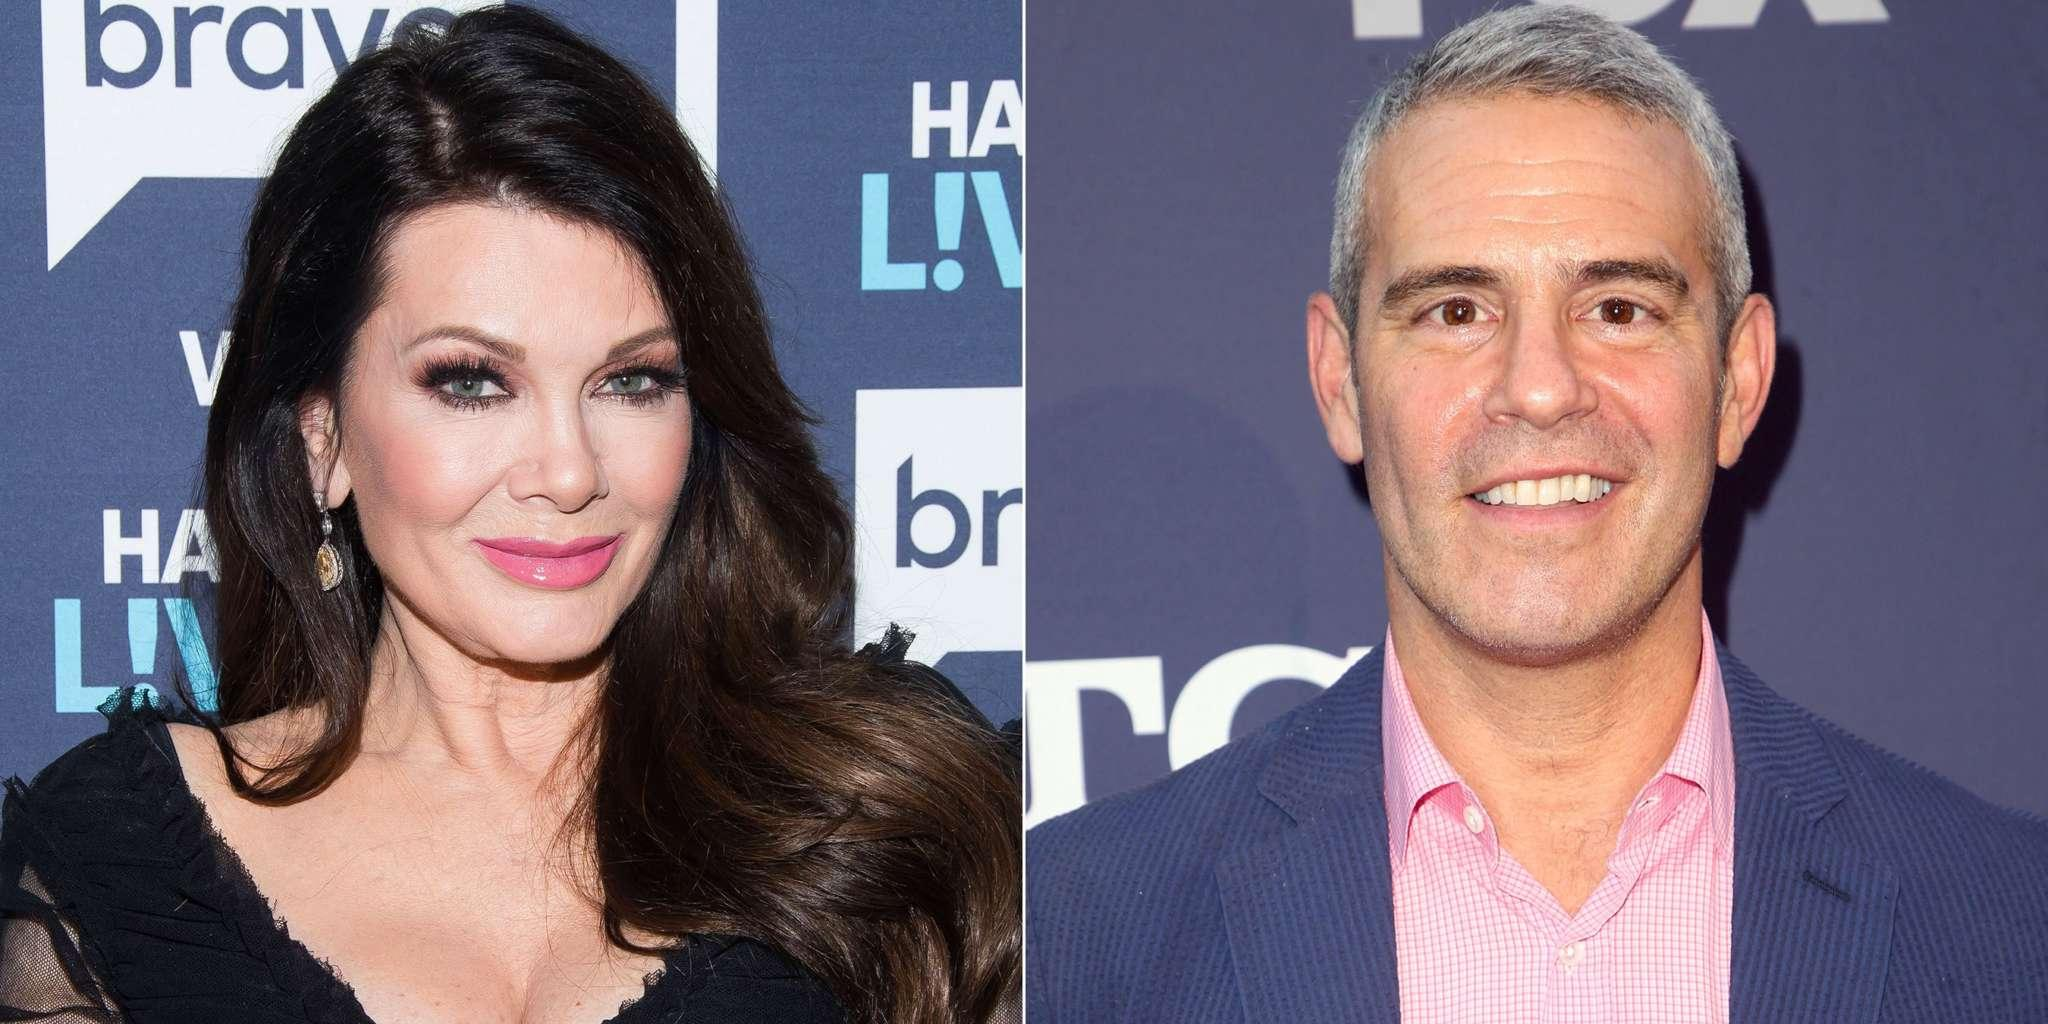 Andy Cohen Has High Hopes Lisa Vanderpump Will Come Back To RHOBH One Day - Here's Why!